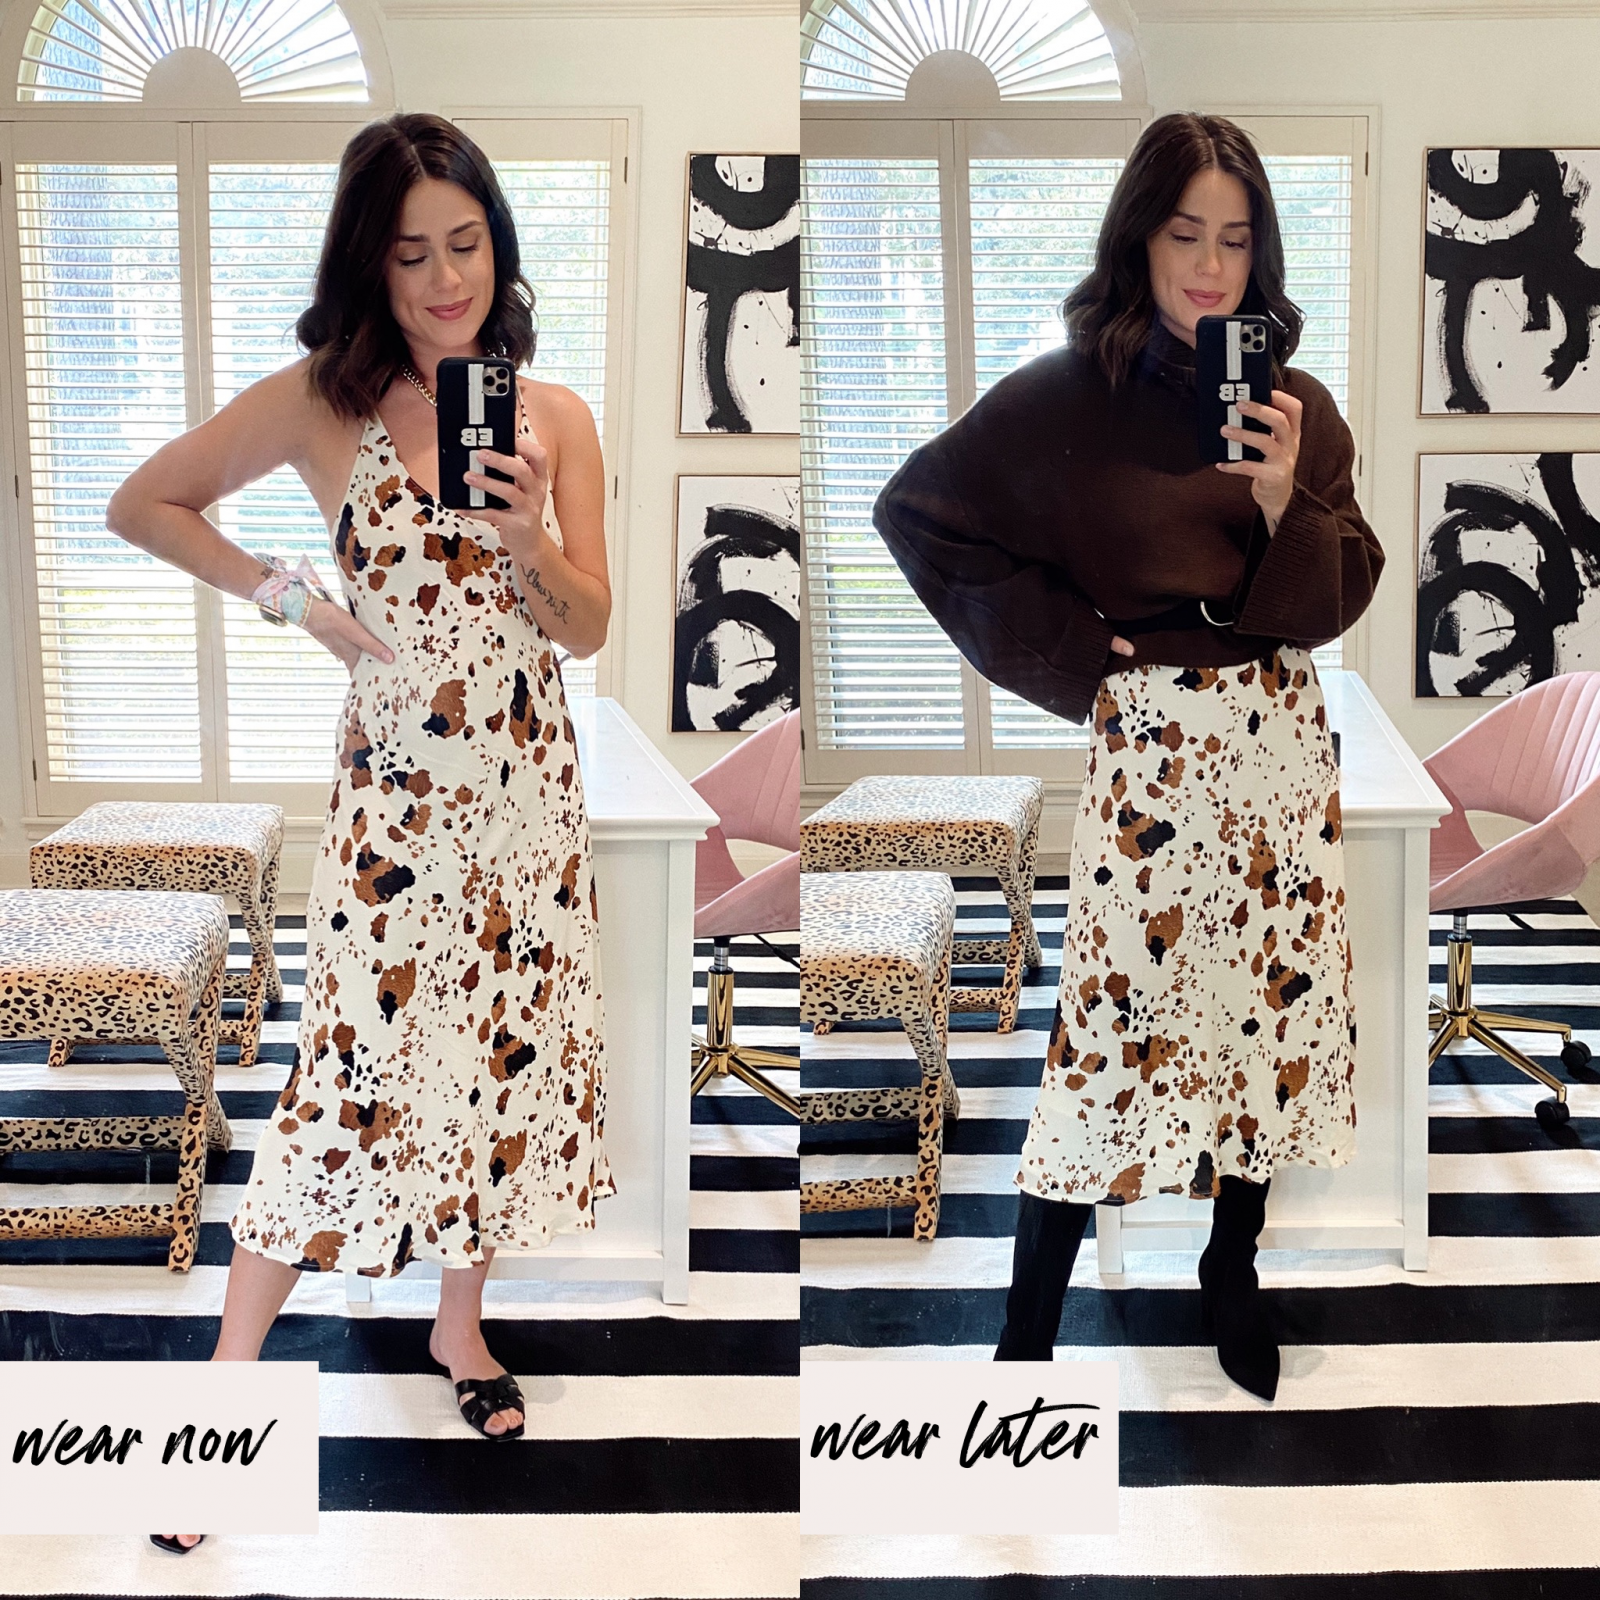 Elly Brown shows how to wear a slip dress in the fall by layering it with a sweater and boots